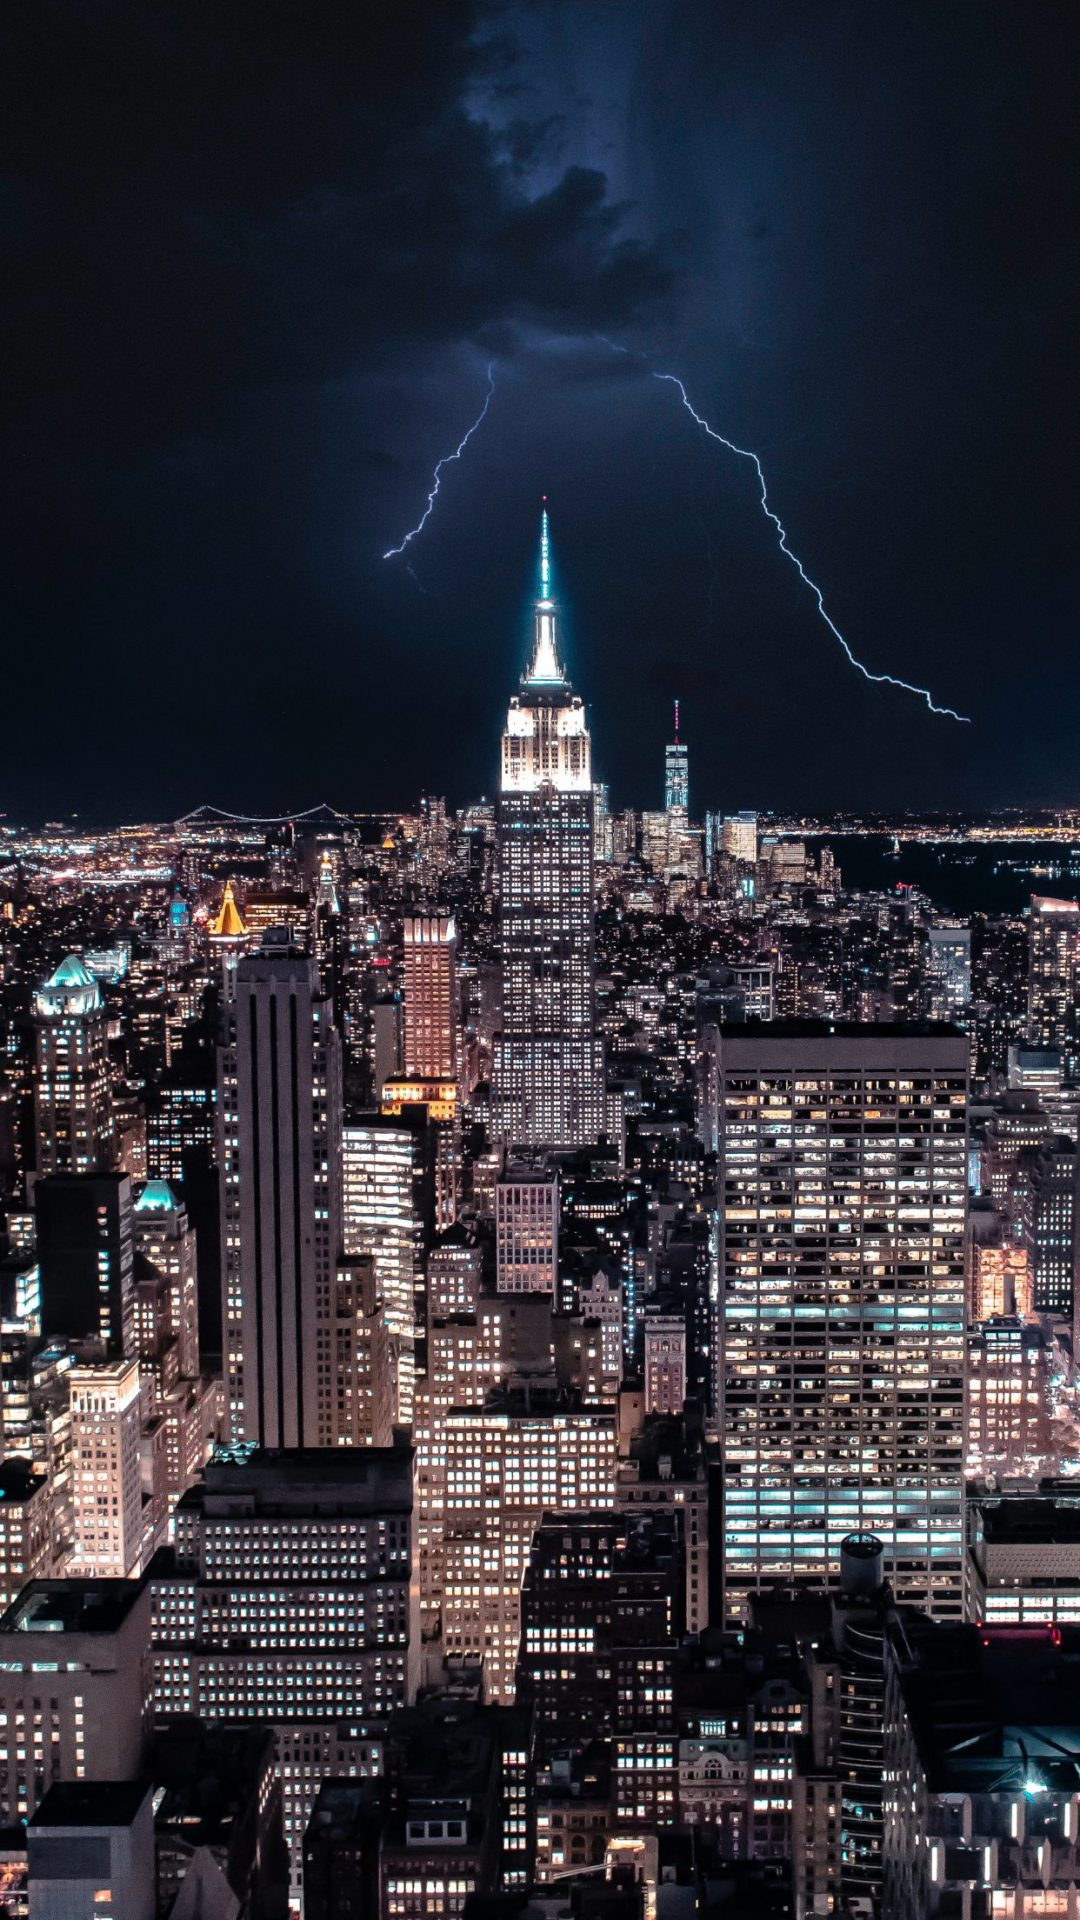 Empire state building with lightning